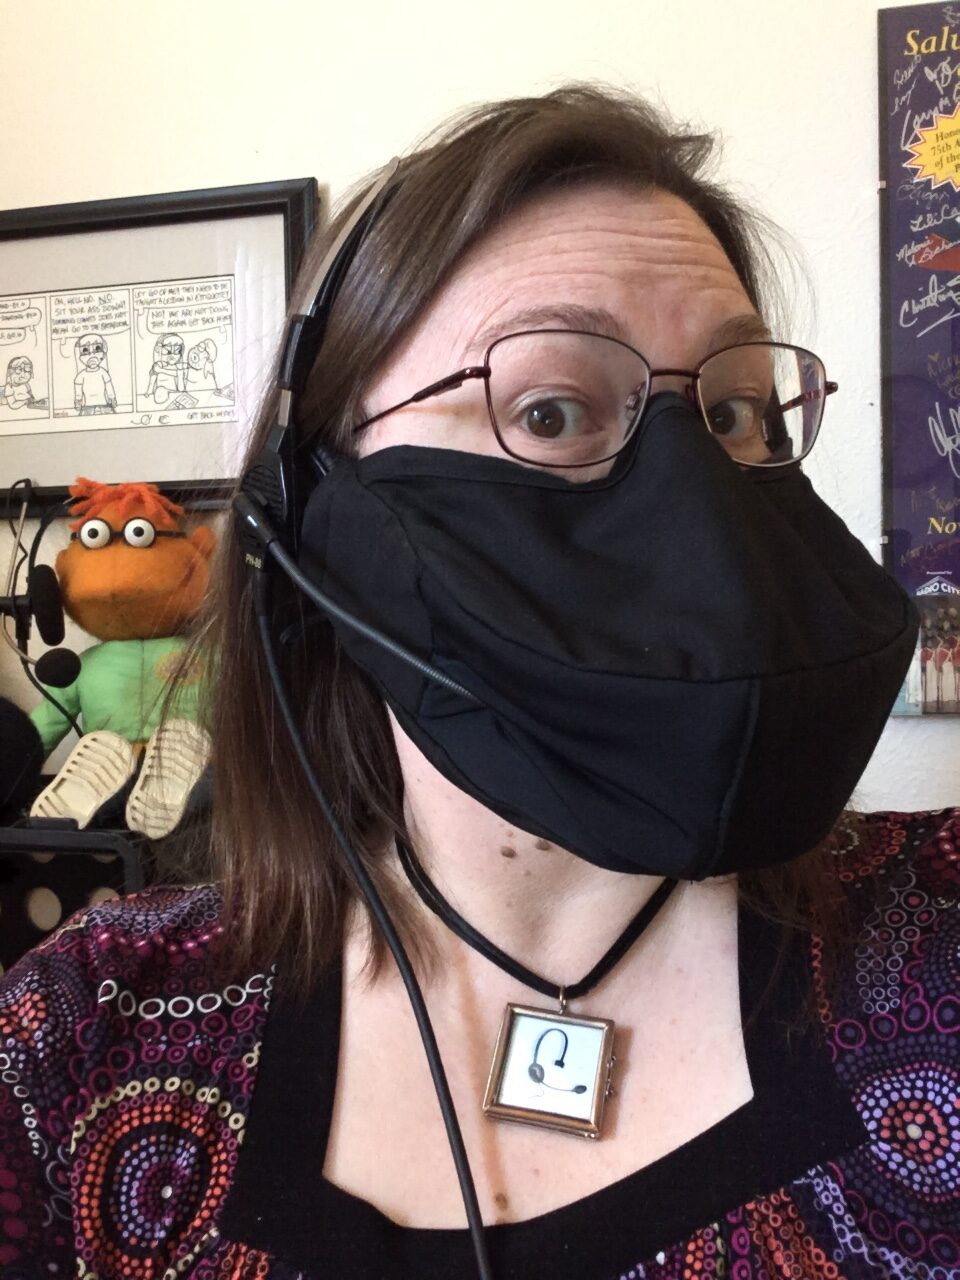 Stage Manager Erin Joy Swank wears a mask designed for headset use